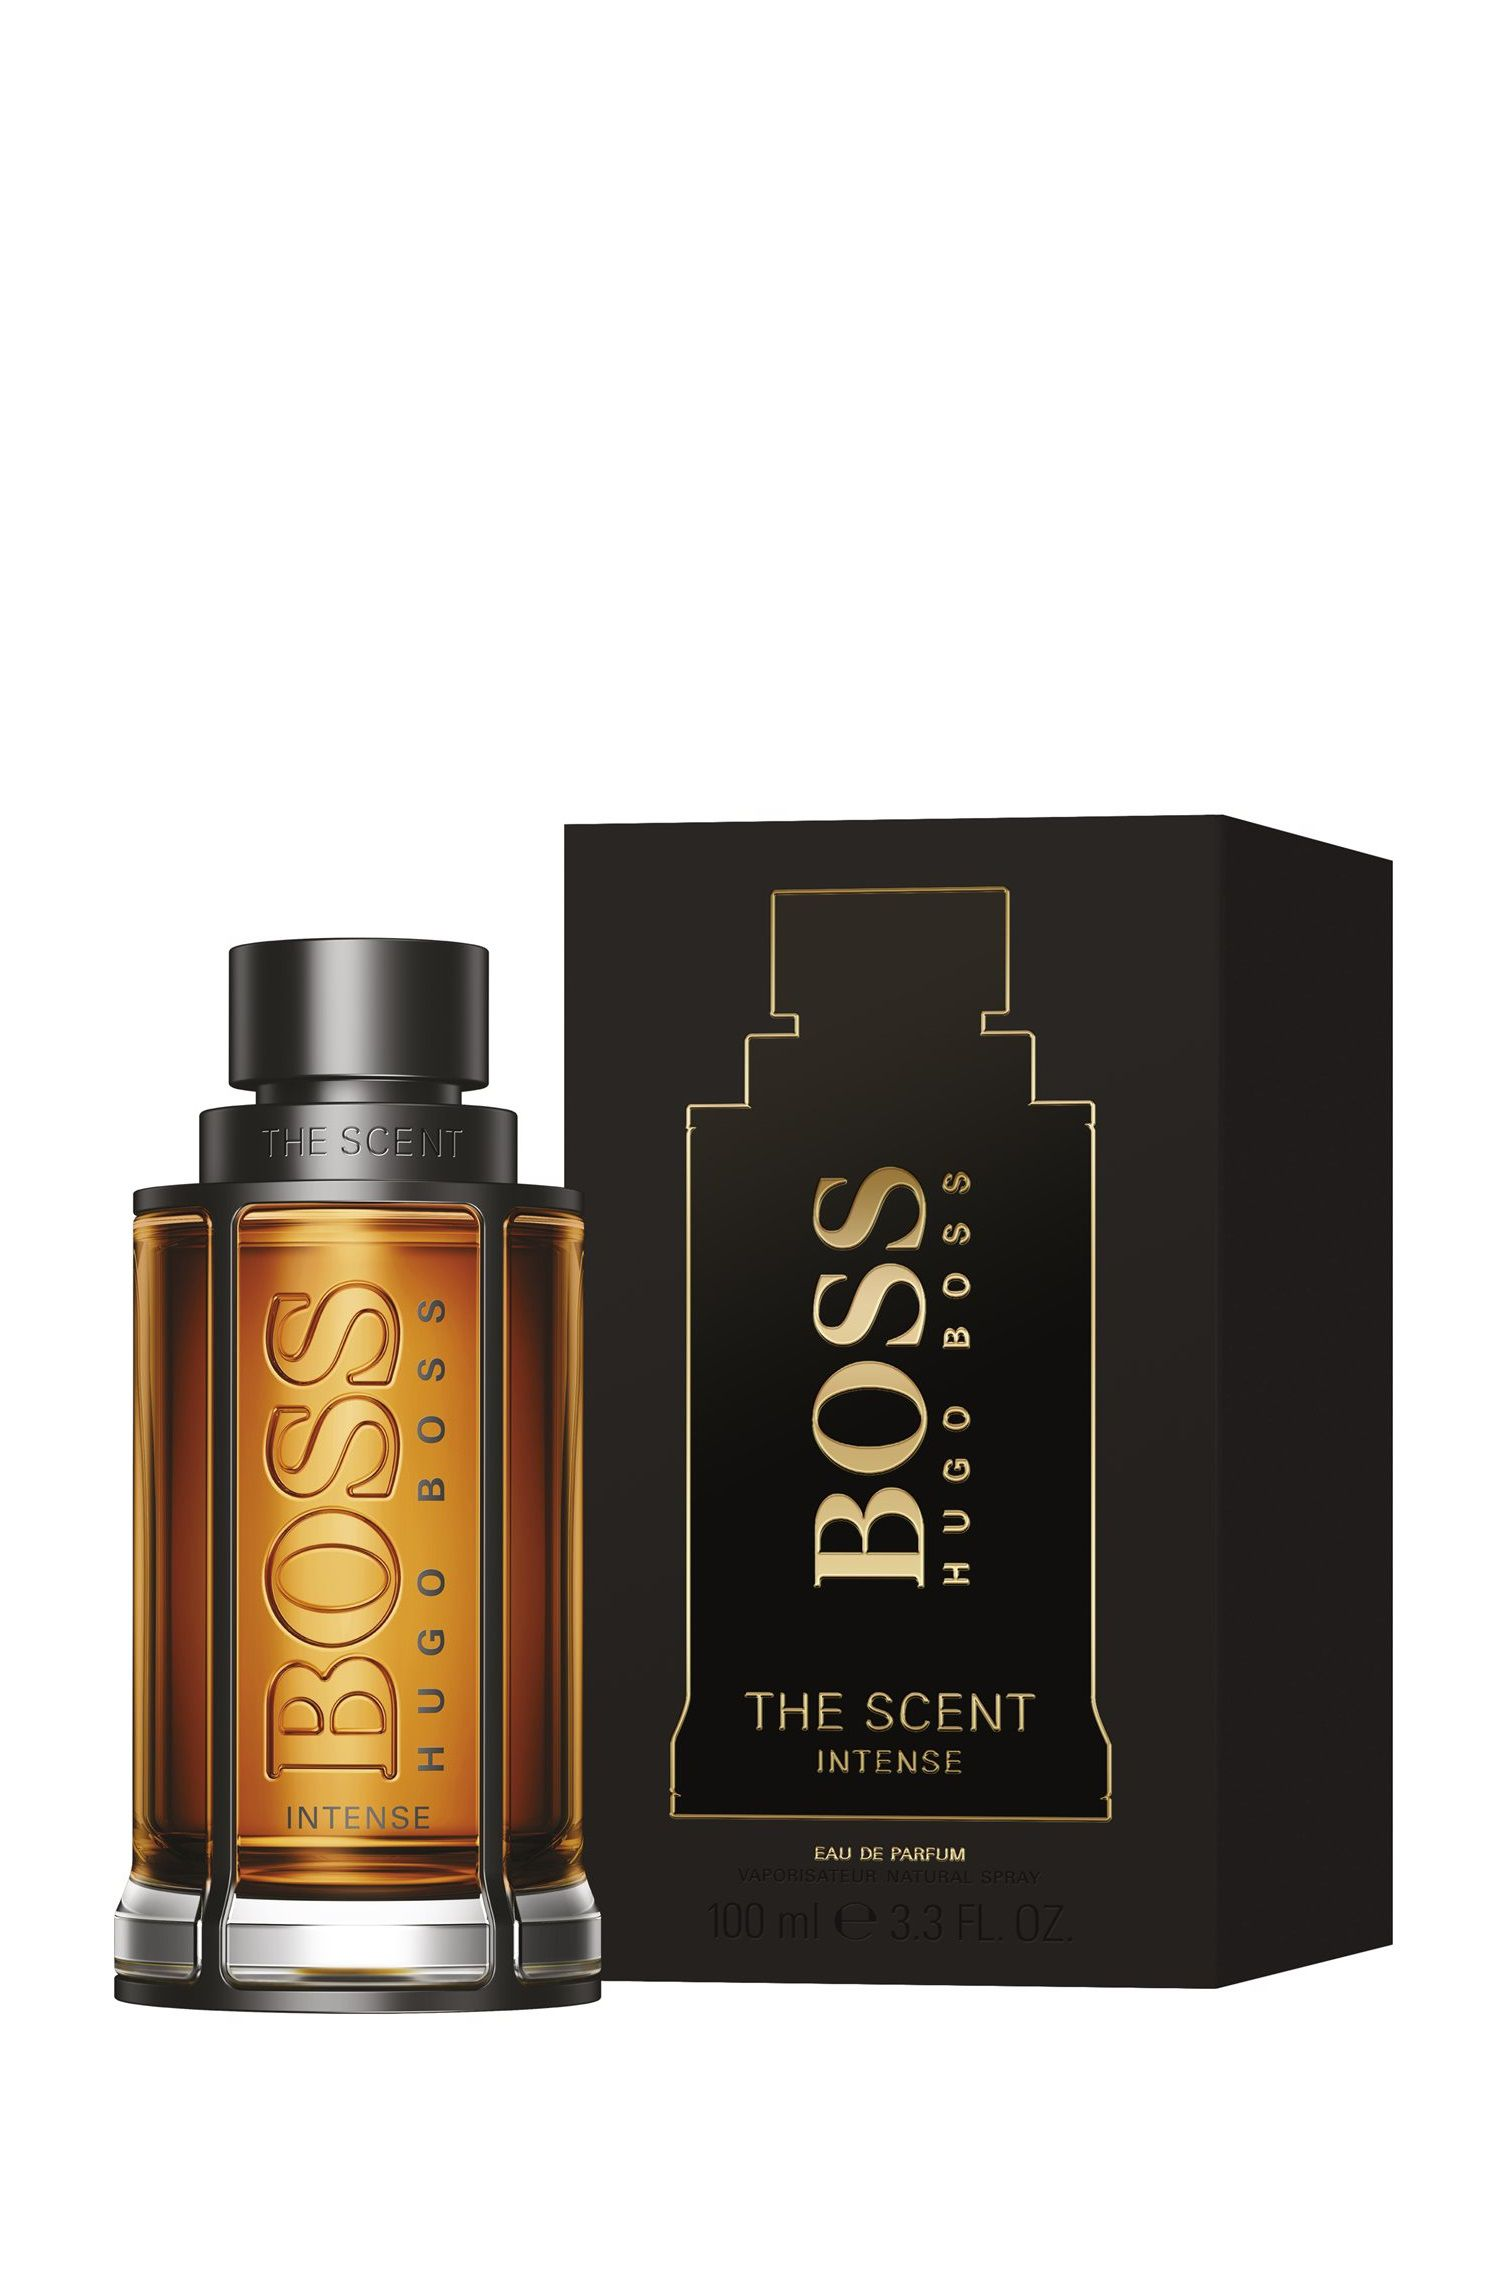 BOSS The Scent Intense for Him Eau de Parfum 100ml, Assorted-Pre-Pack